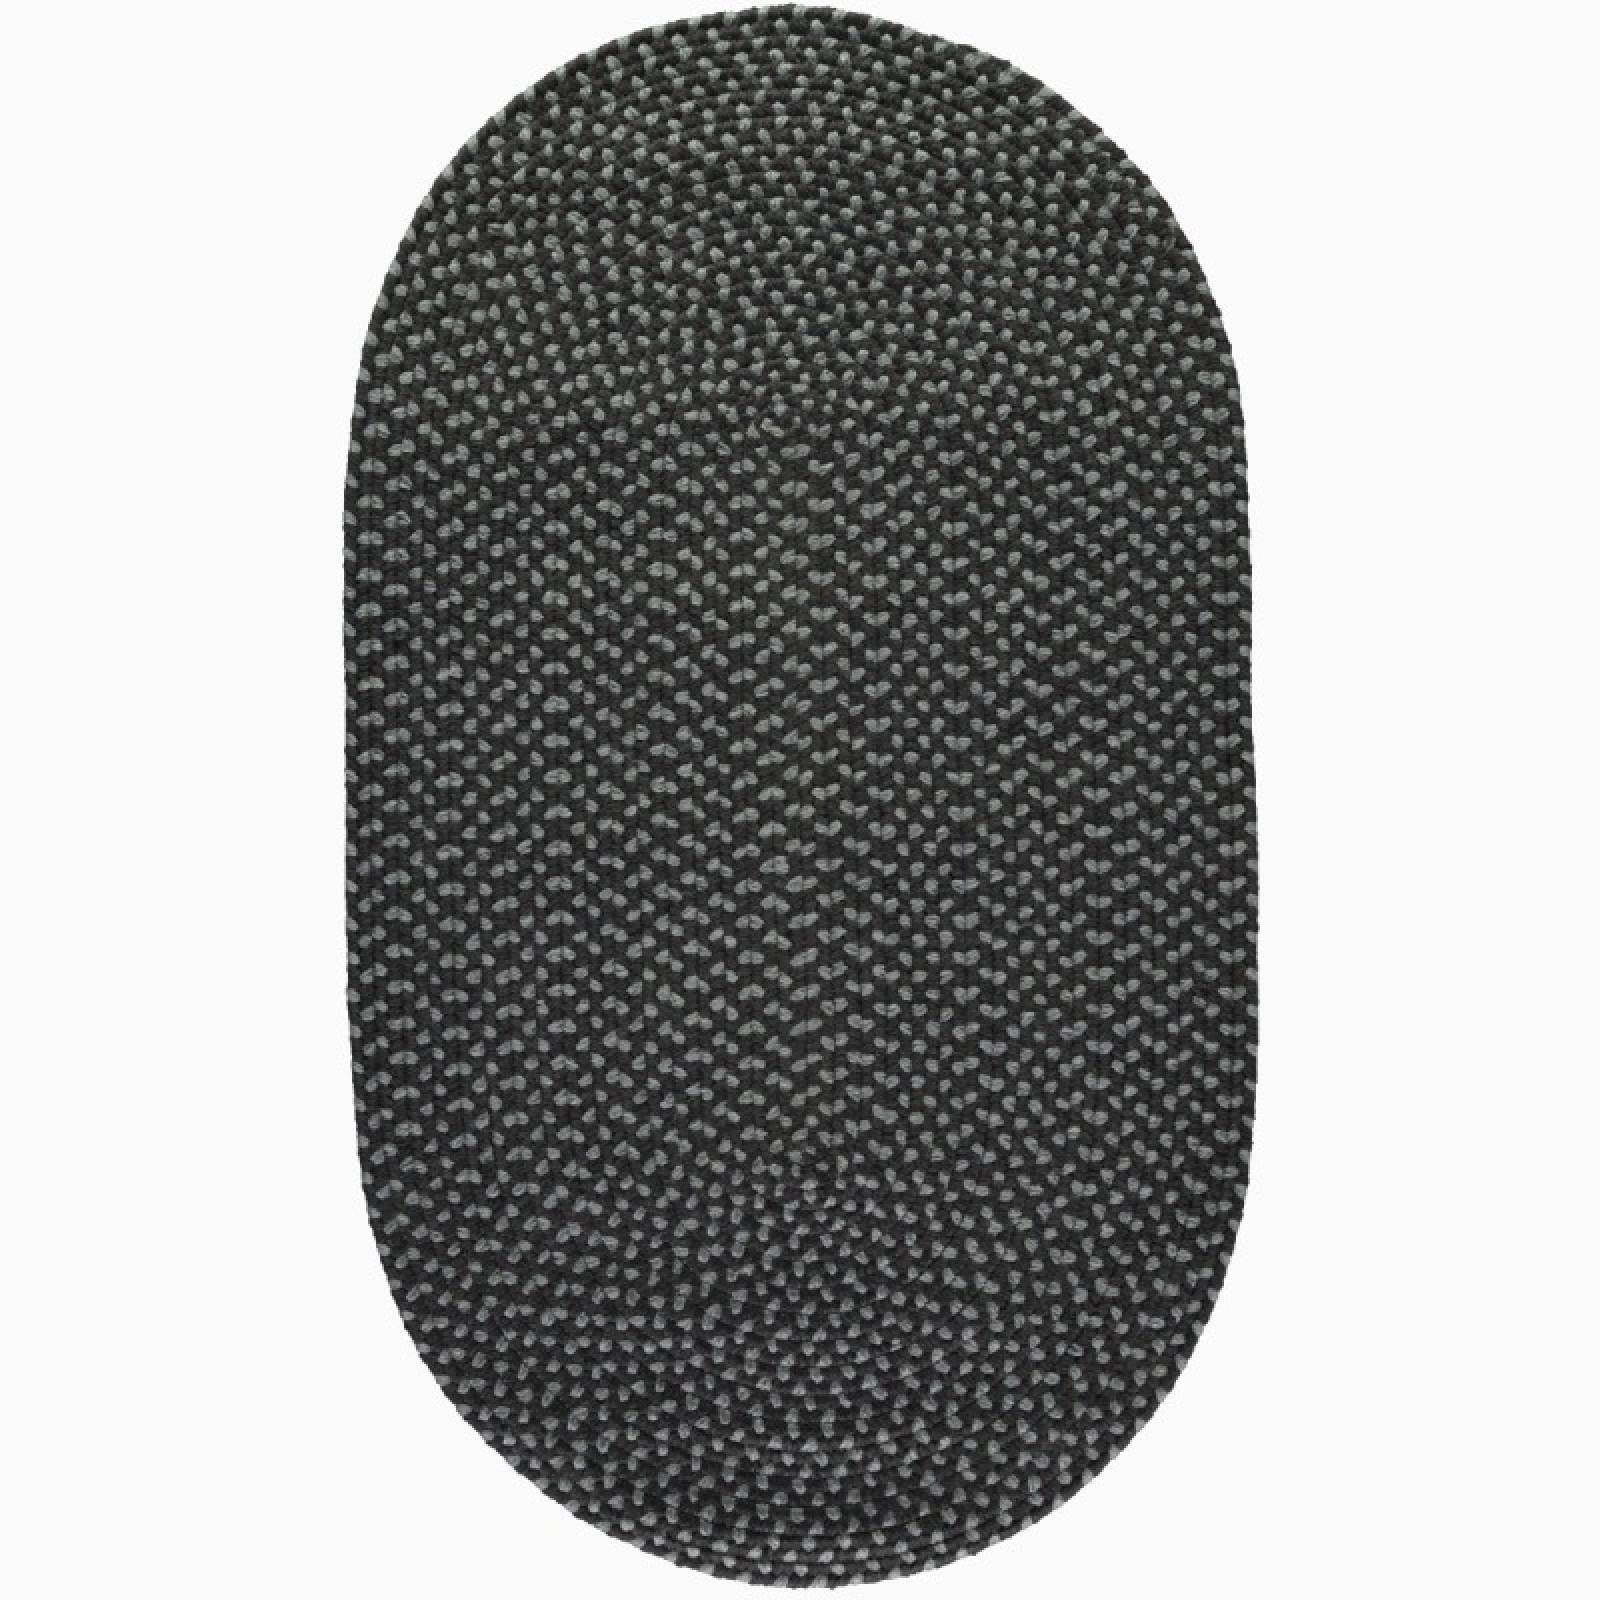 Coal & Pewter Oval Braided Rug Recycled Plastic 122x183cm